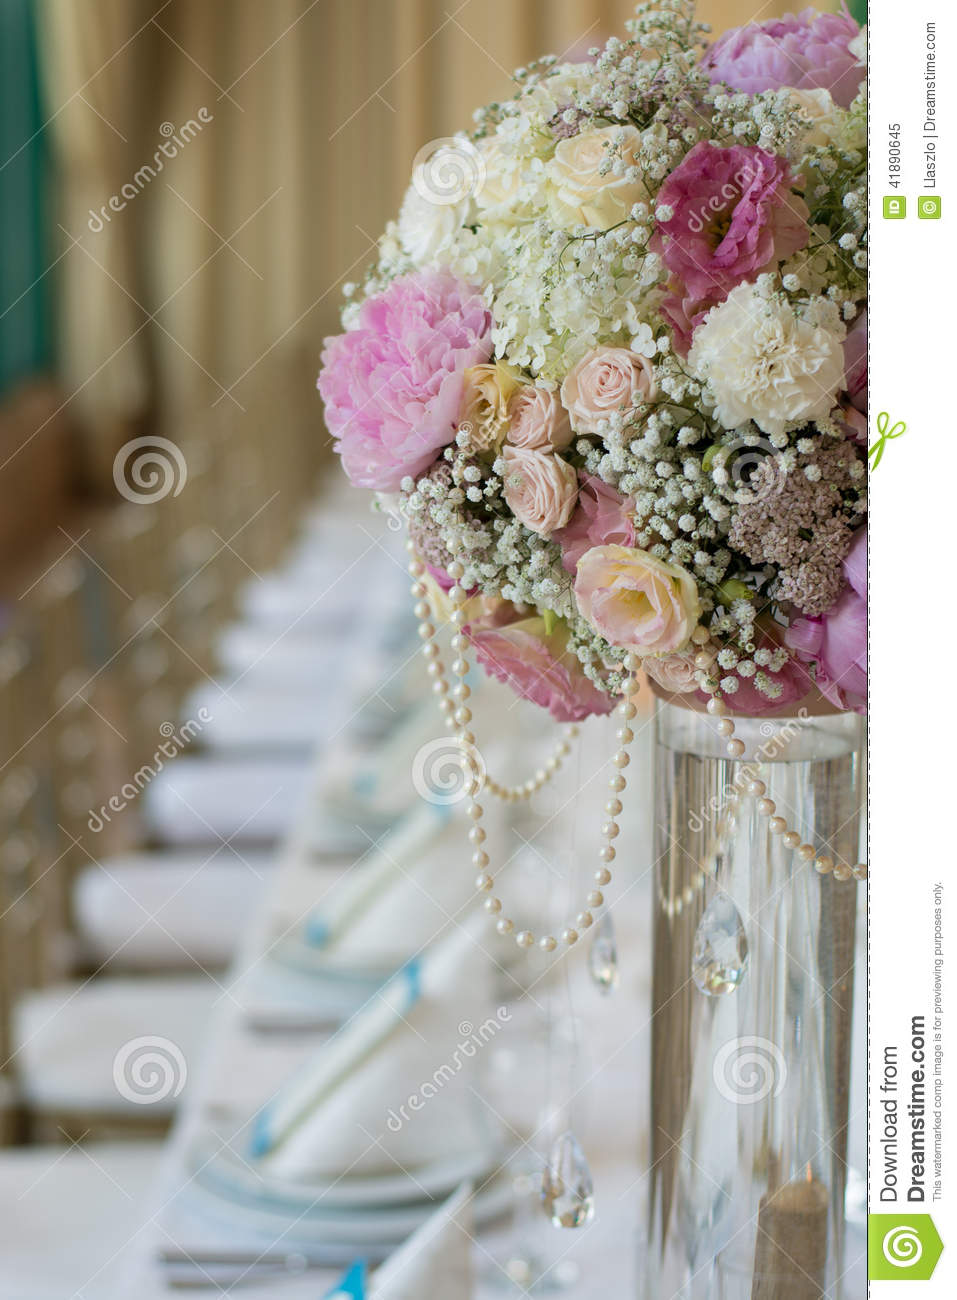 Wedding Flowers on Banquet Table